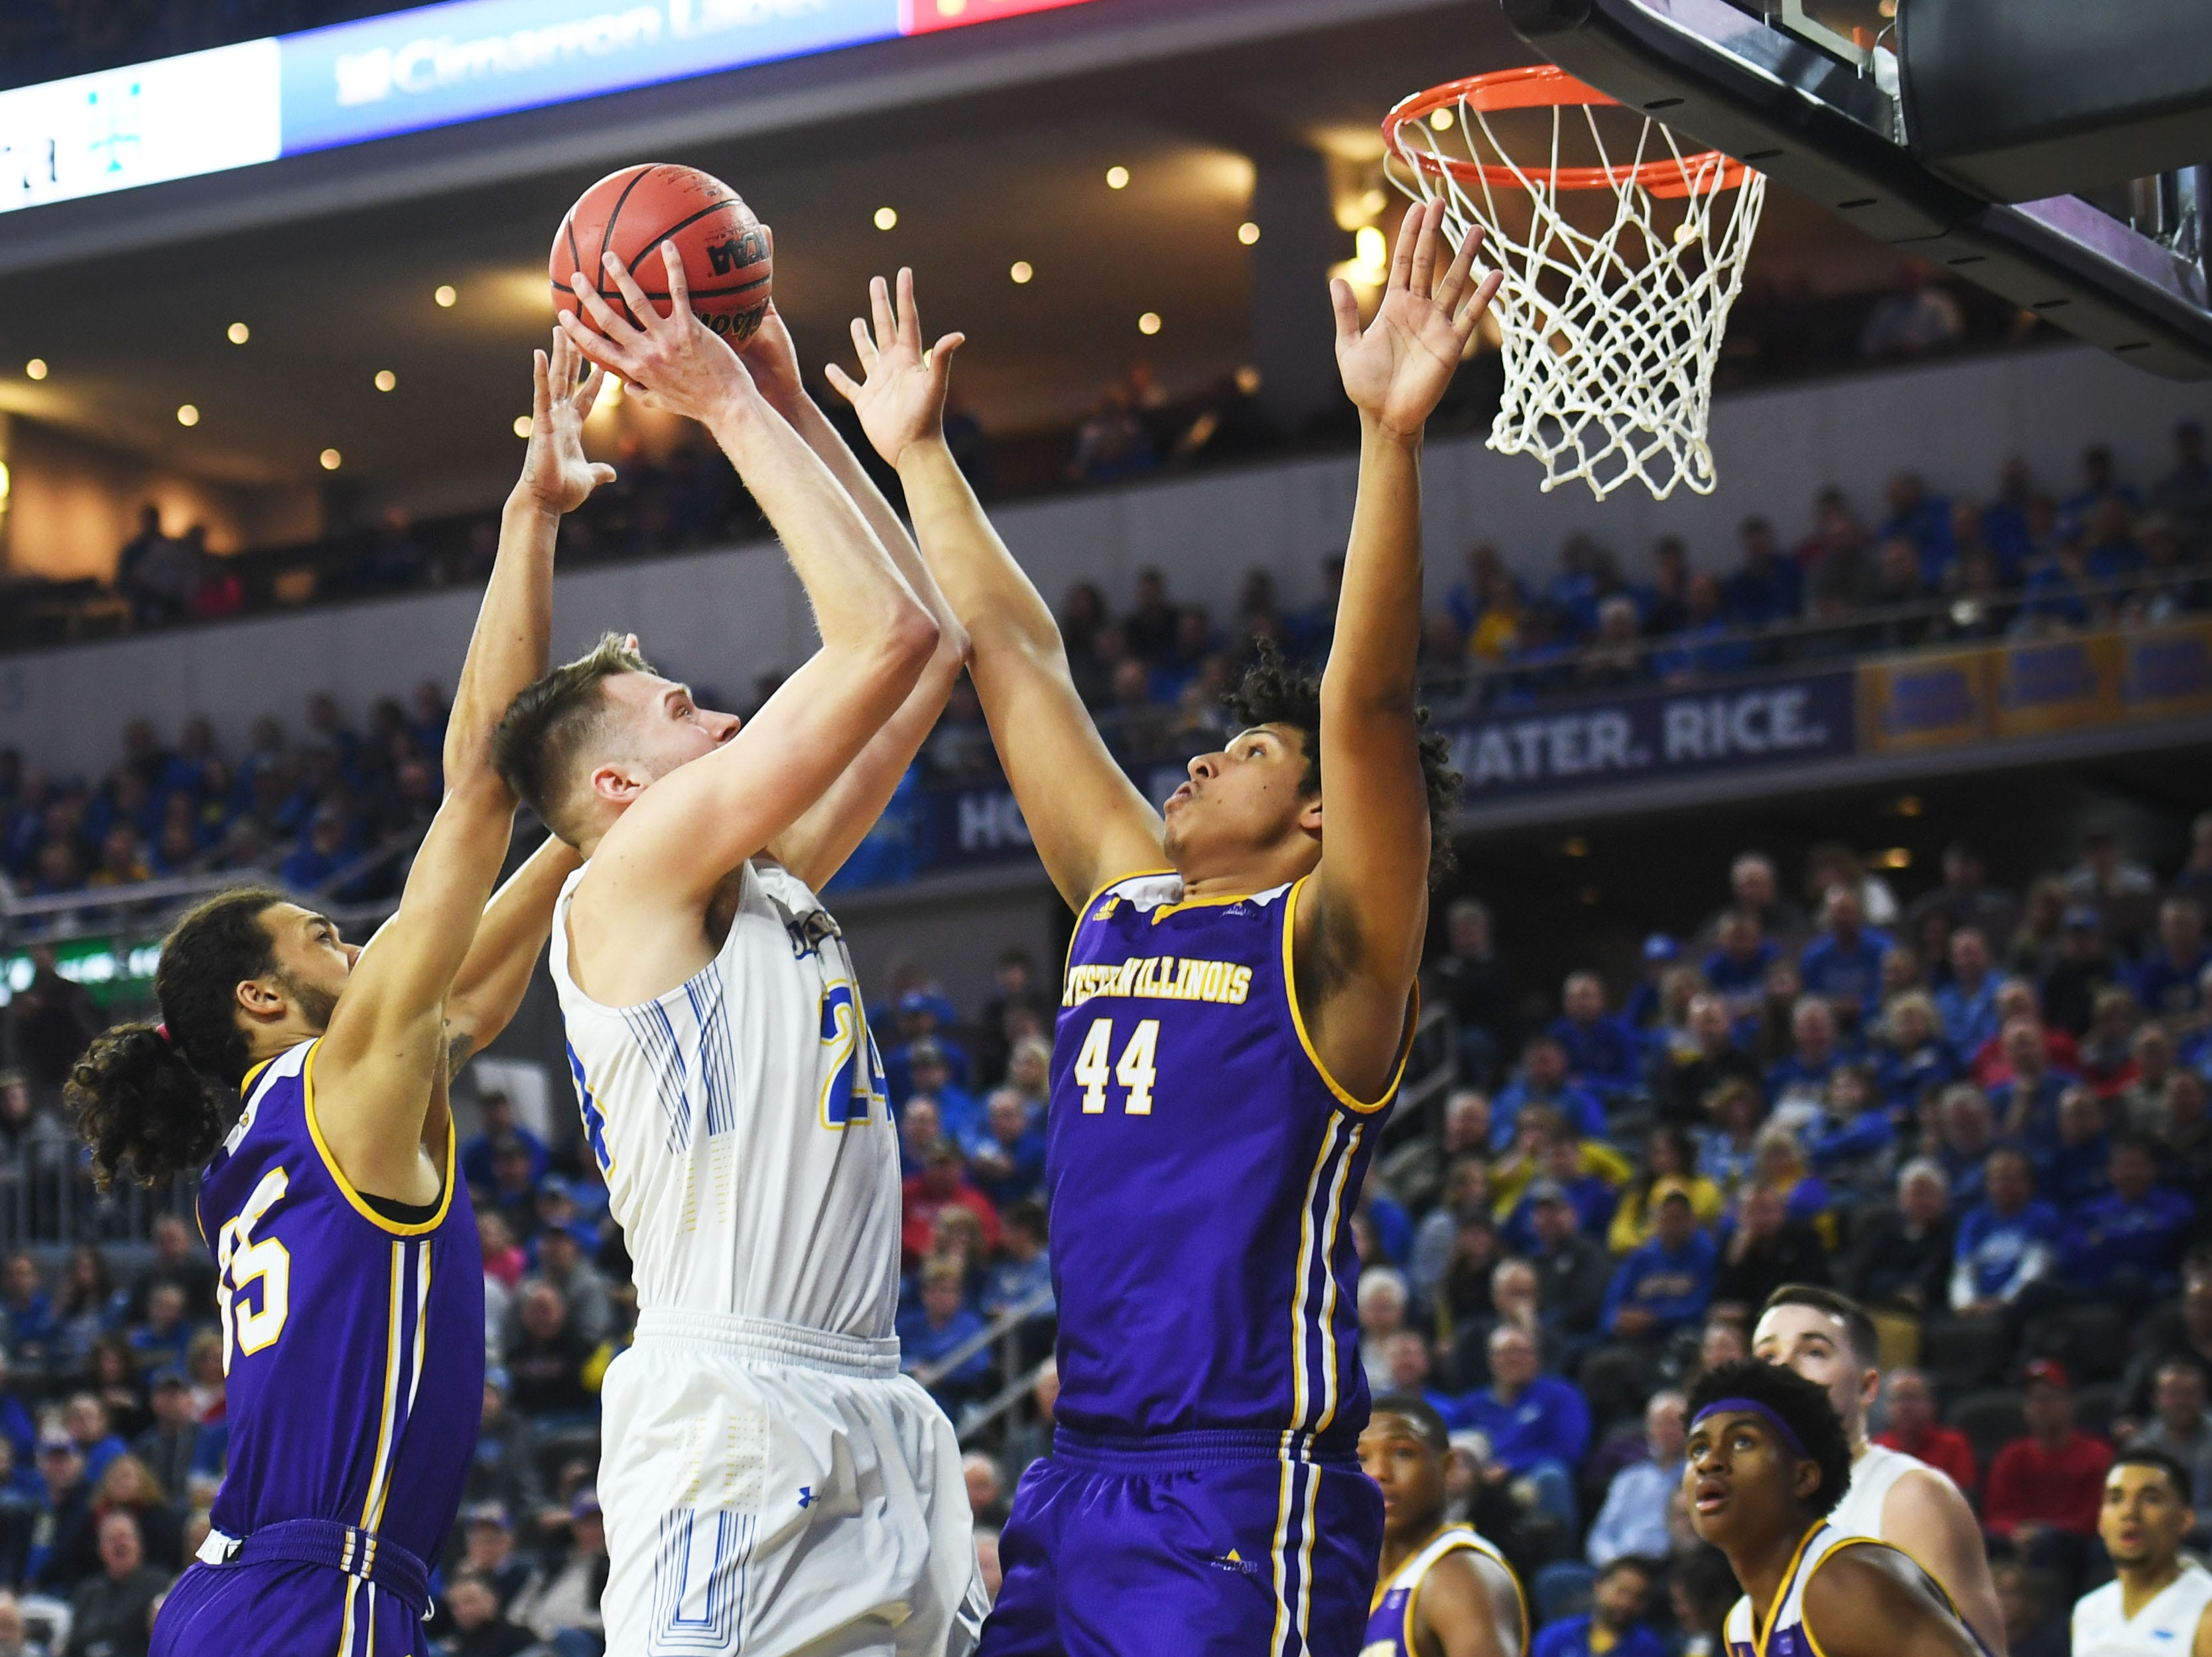 SDSU's Mike Daum goes against Western Illinois defense during the game Saturday, March 9, in the Summit League tournament at the Denny Sanford Premier Center in Sioux Falls.